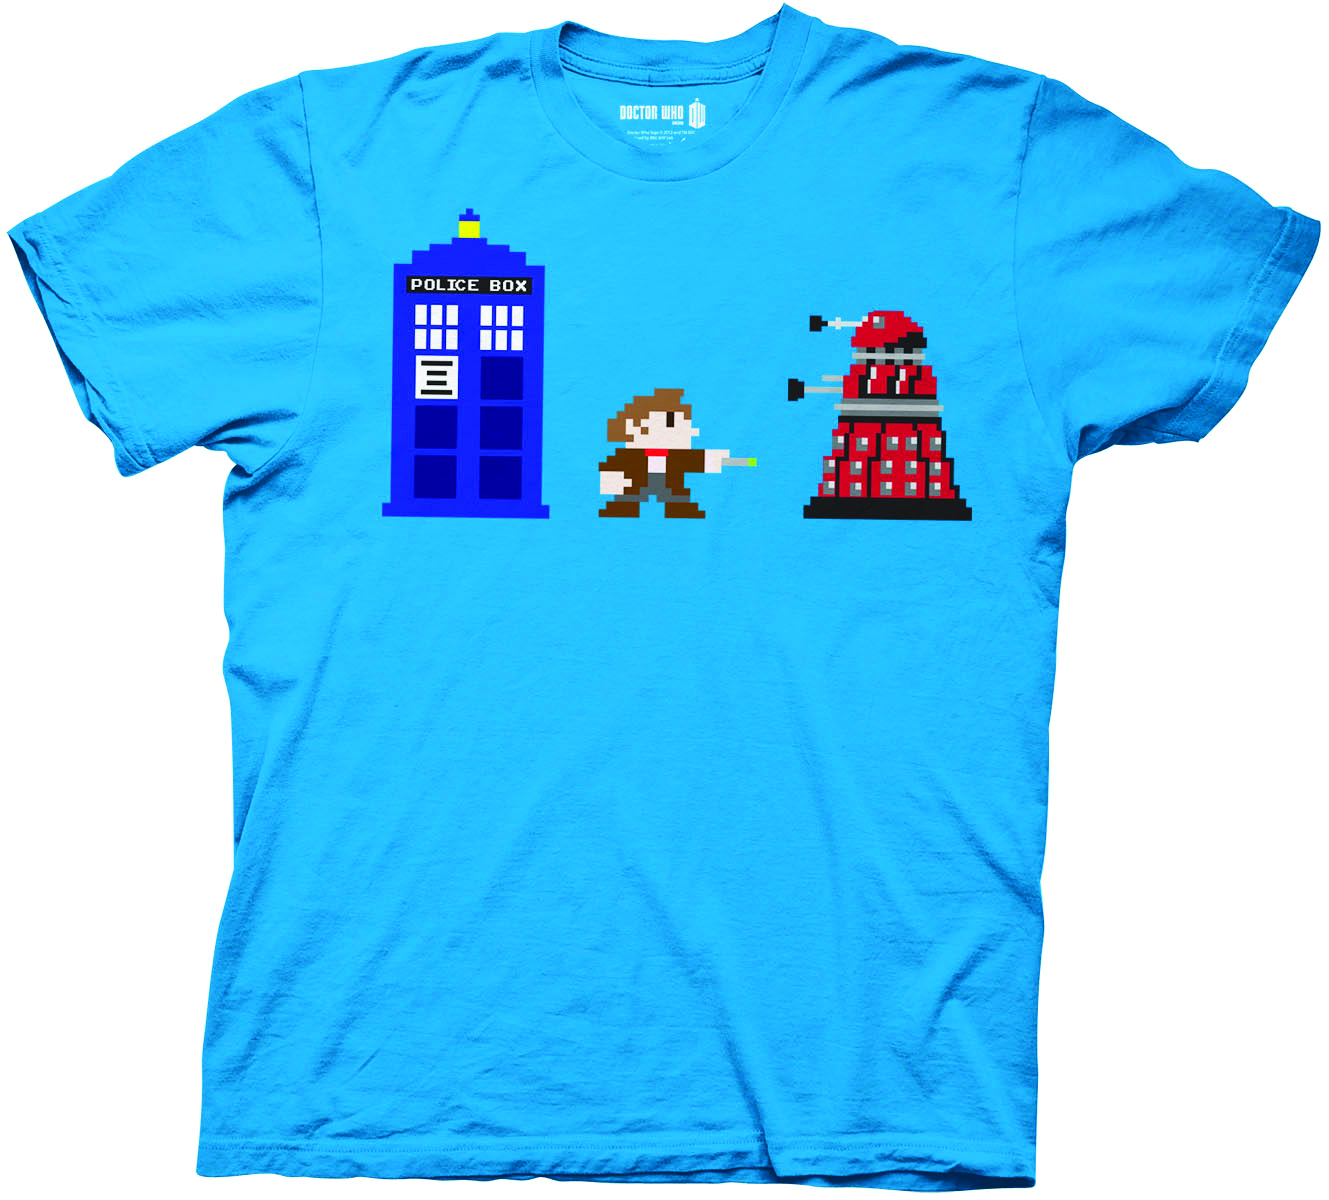 DOCTOR WHO 8 BIT PX TURQUOISE T/S XL